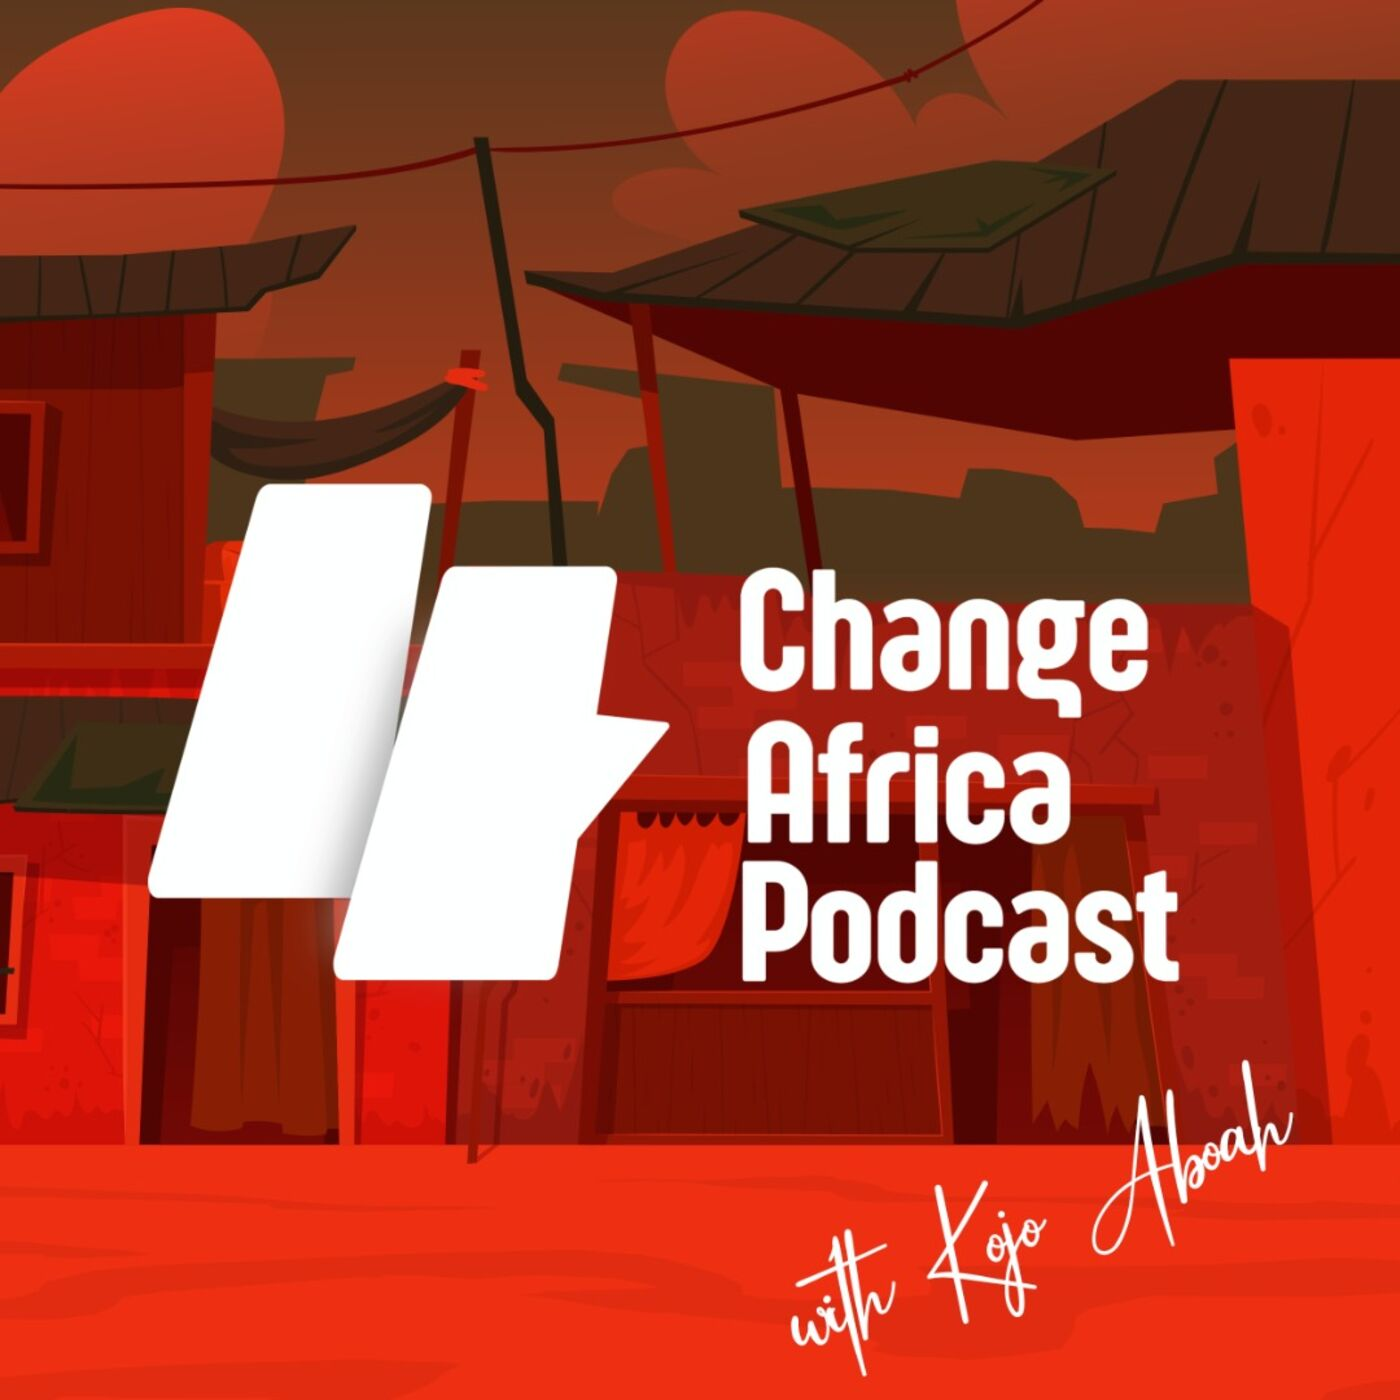 Change Africa Podcast on Jamit